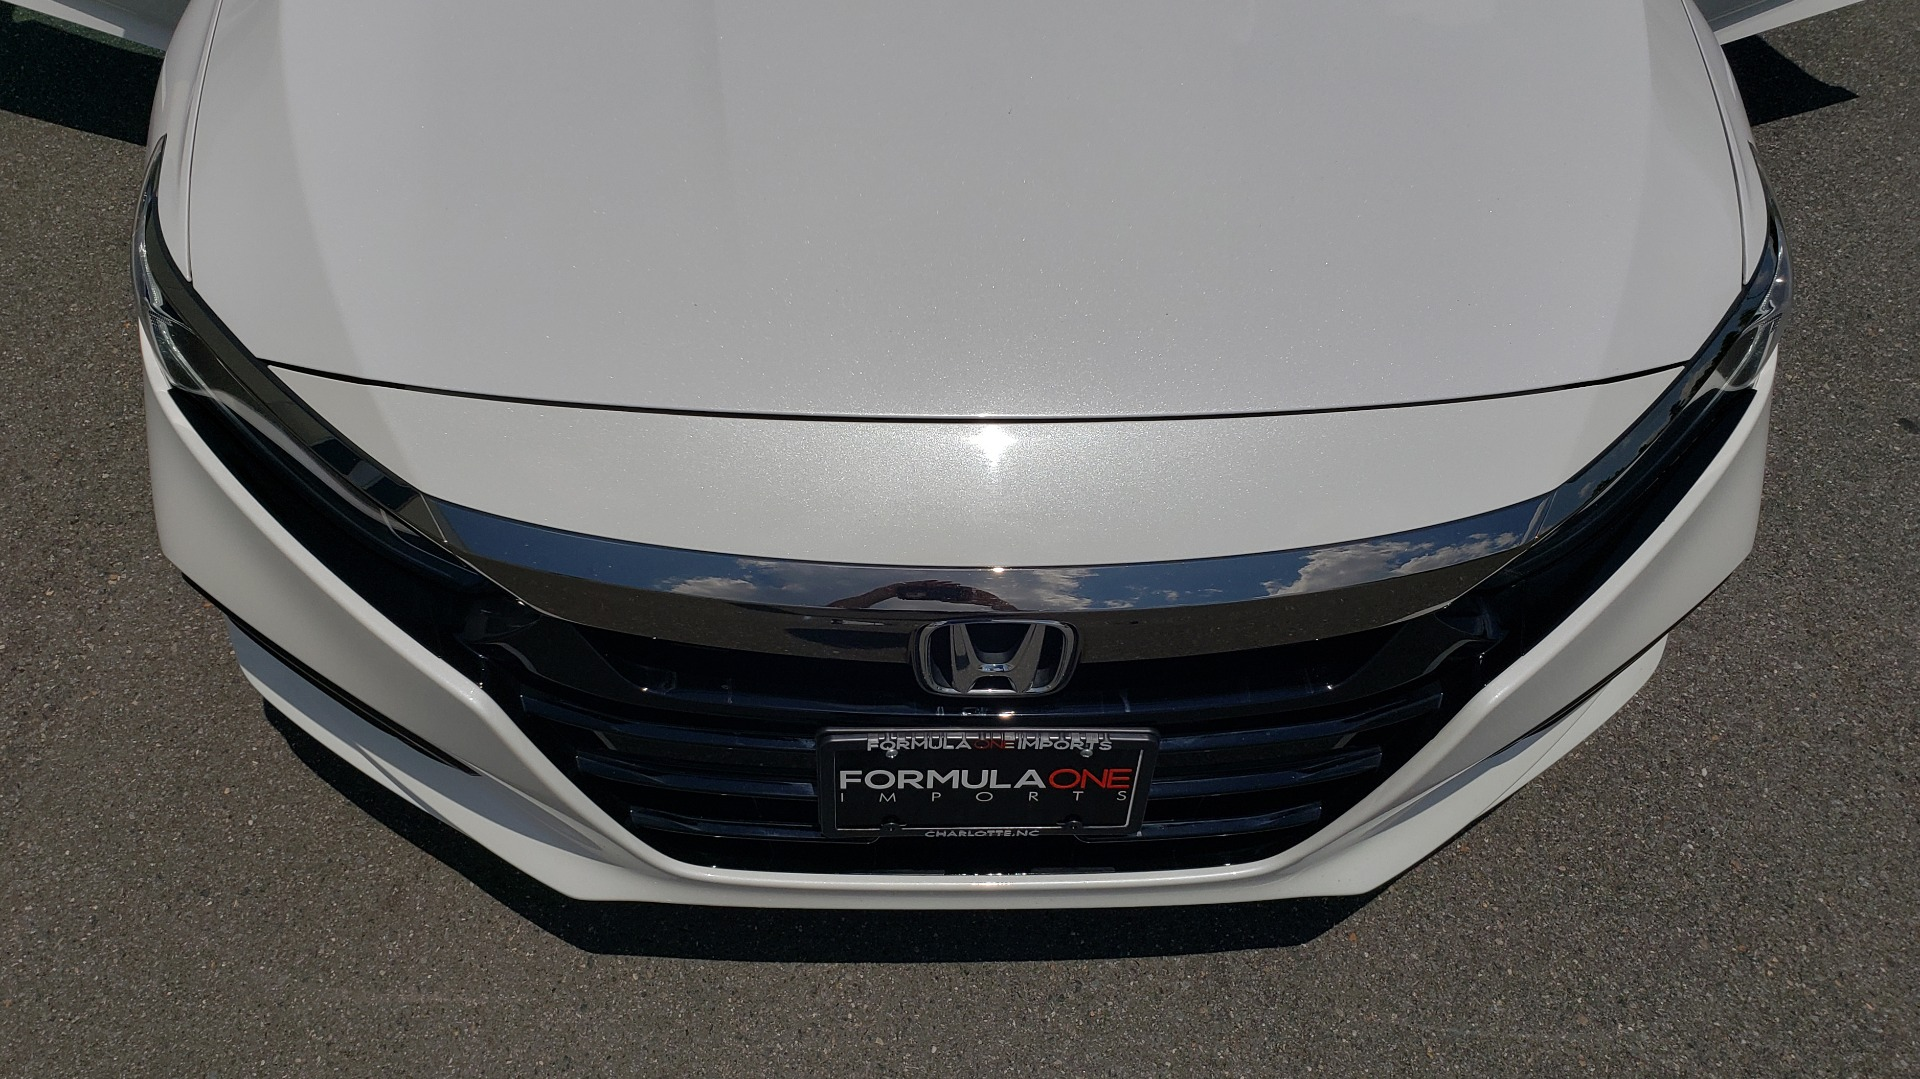 Used 2018 Honda ACCORD SEDAN SPORT 1.5T / CVT TRANS / FWD / 19IN WHEELS for sale $20,995 at Formula Imports in Charlotte NC 28227 19